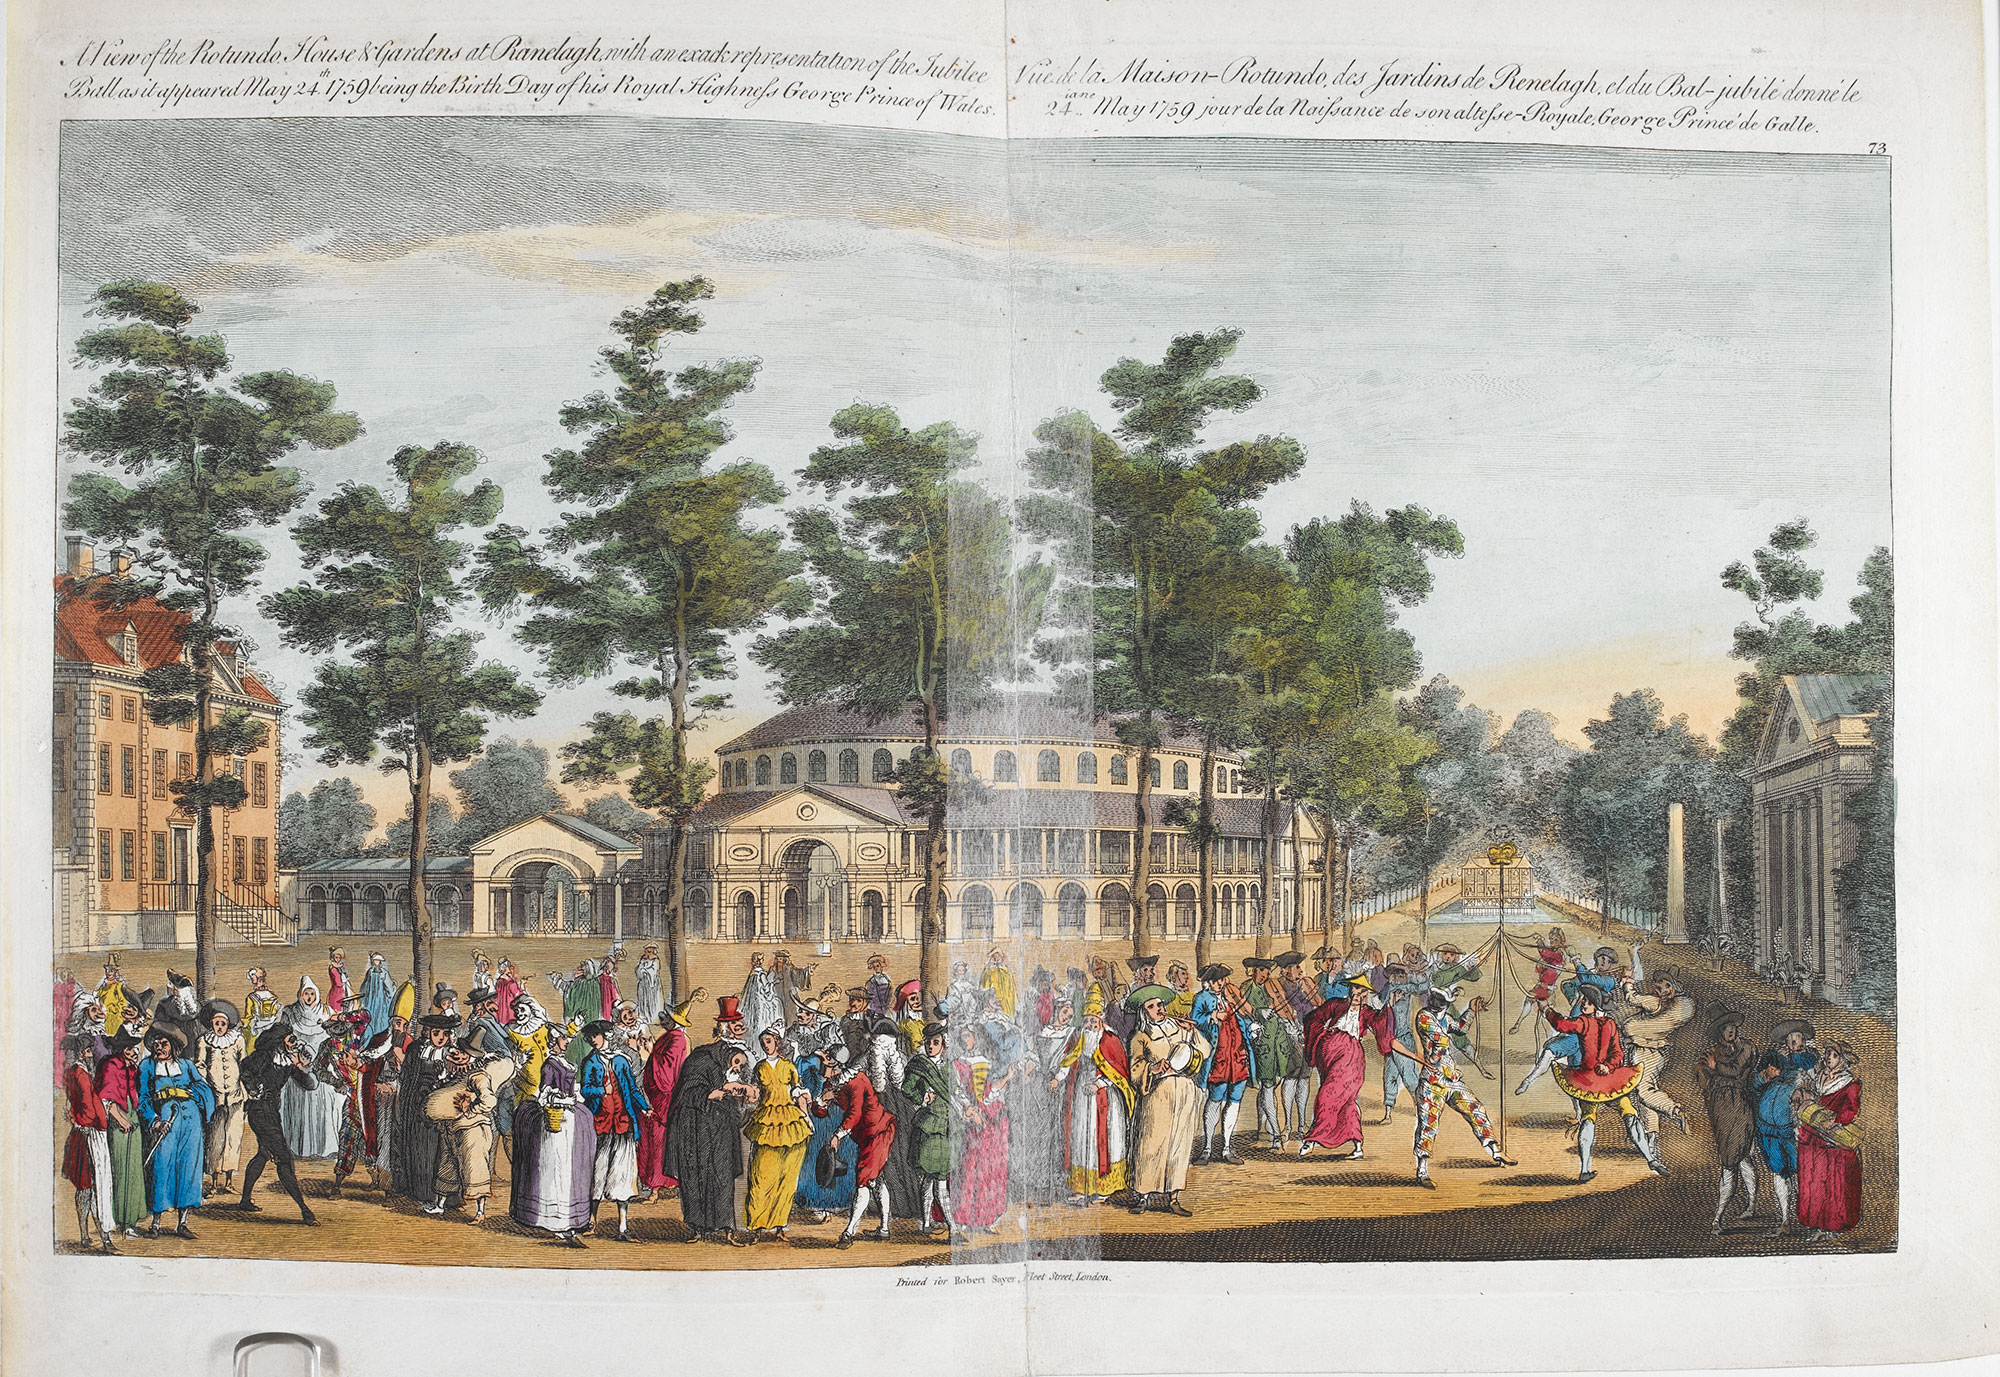 Illustration of entertainments at Ranelagh pleasure gardens